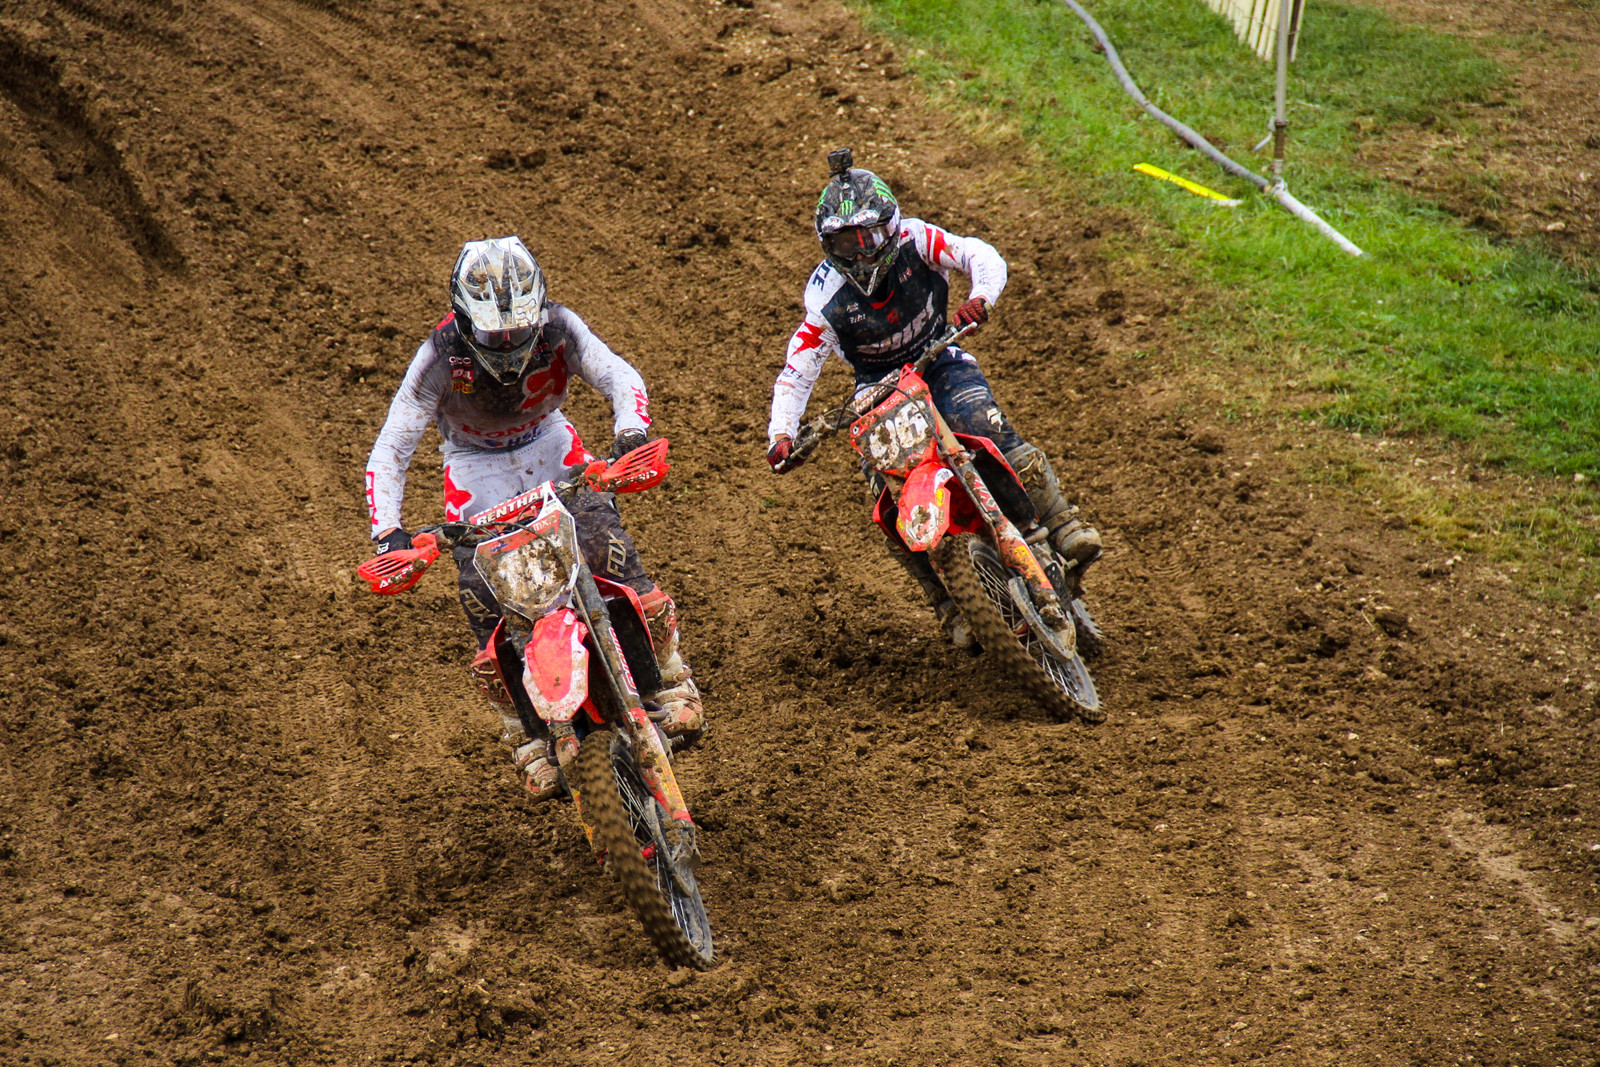 HRC's Calvin Vlaanderen and 114's Hunter Lawrence battled it out in both motos, trading moto scores...finishing ninth and tenth overall each, respectively.